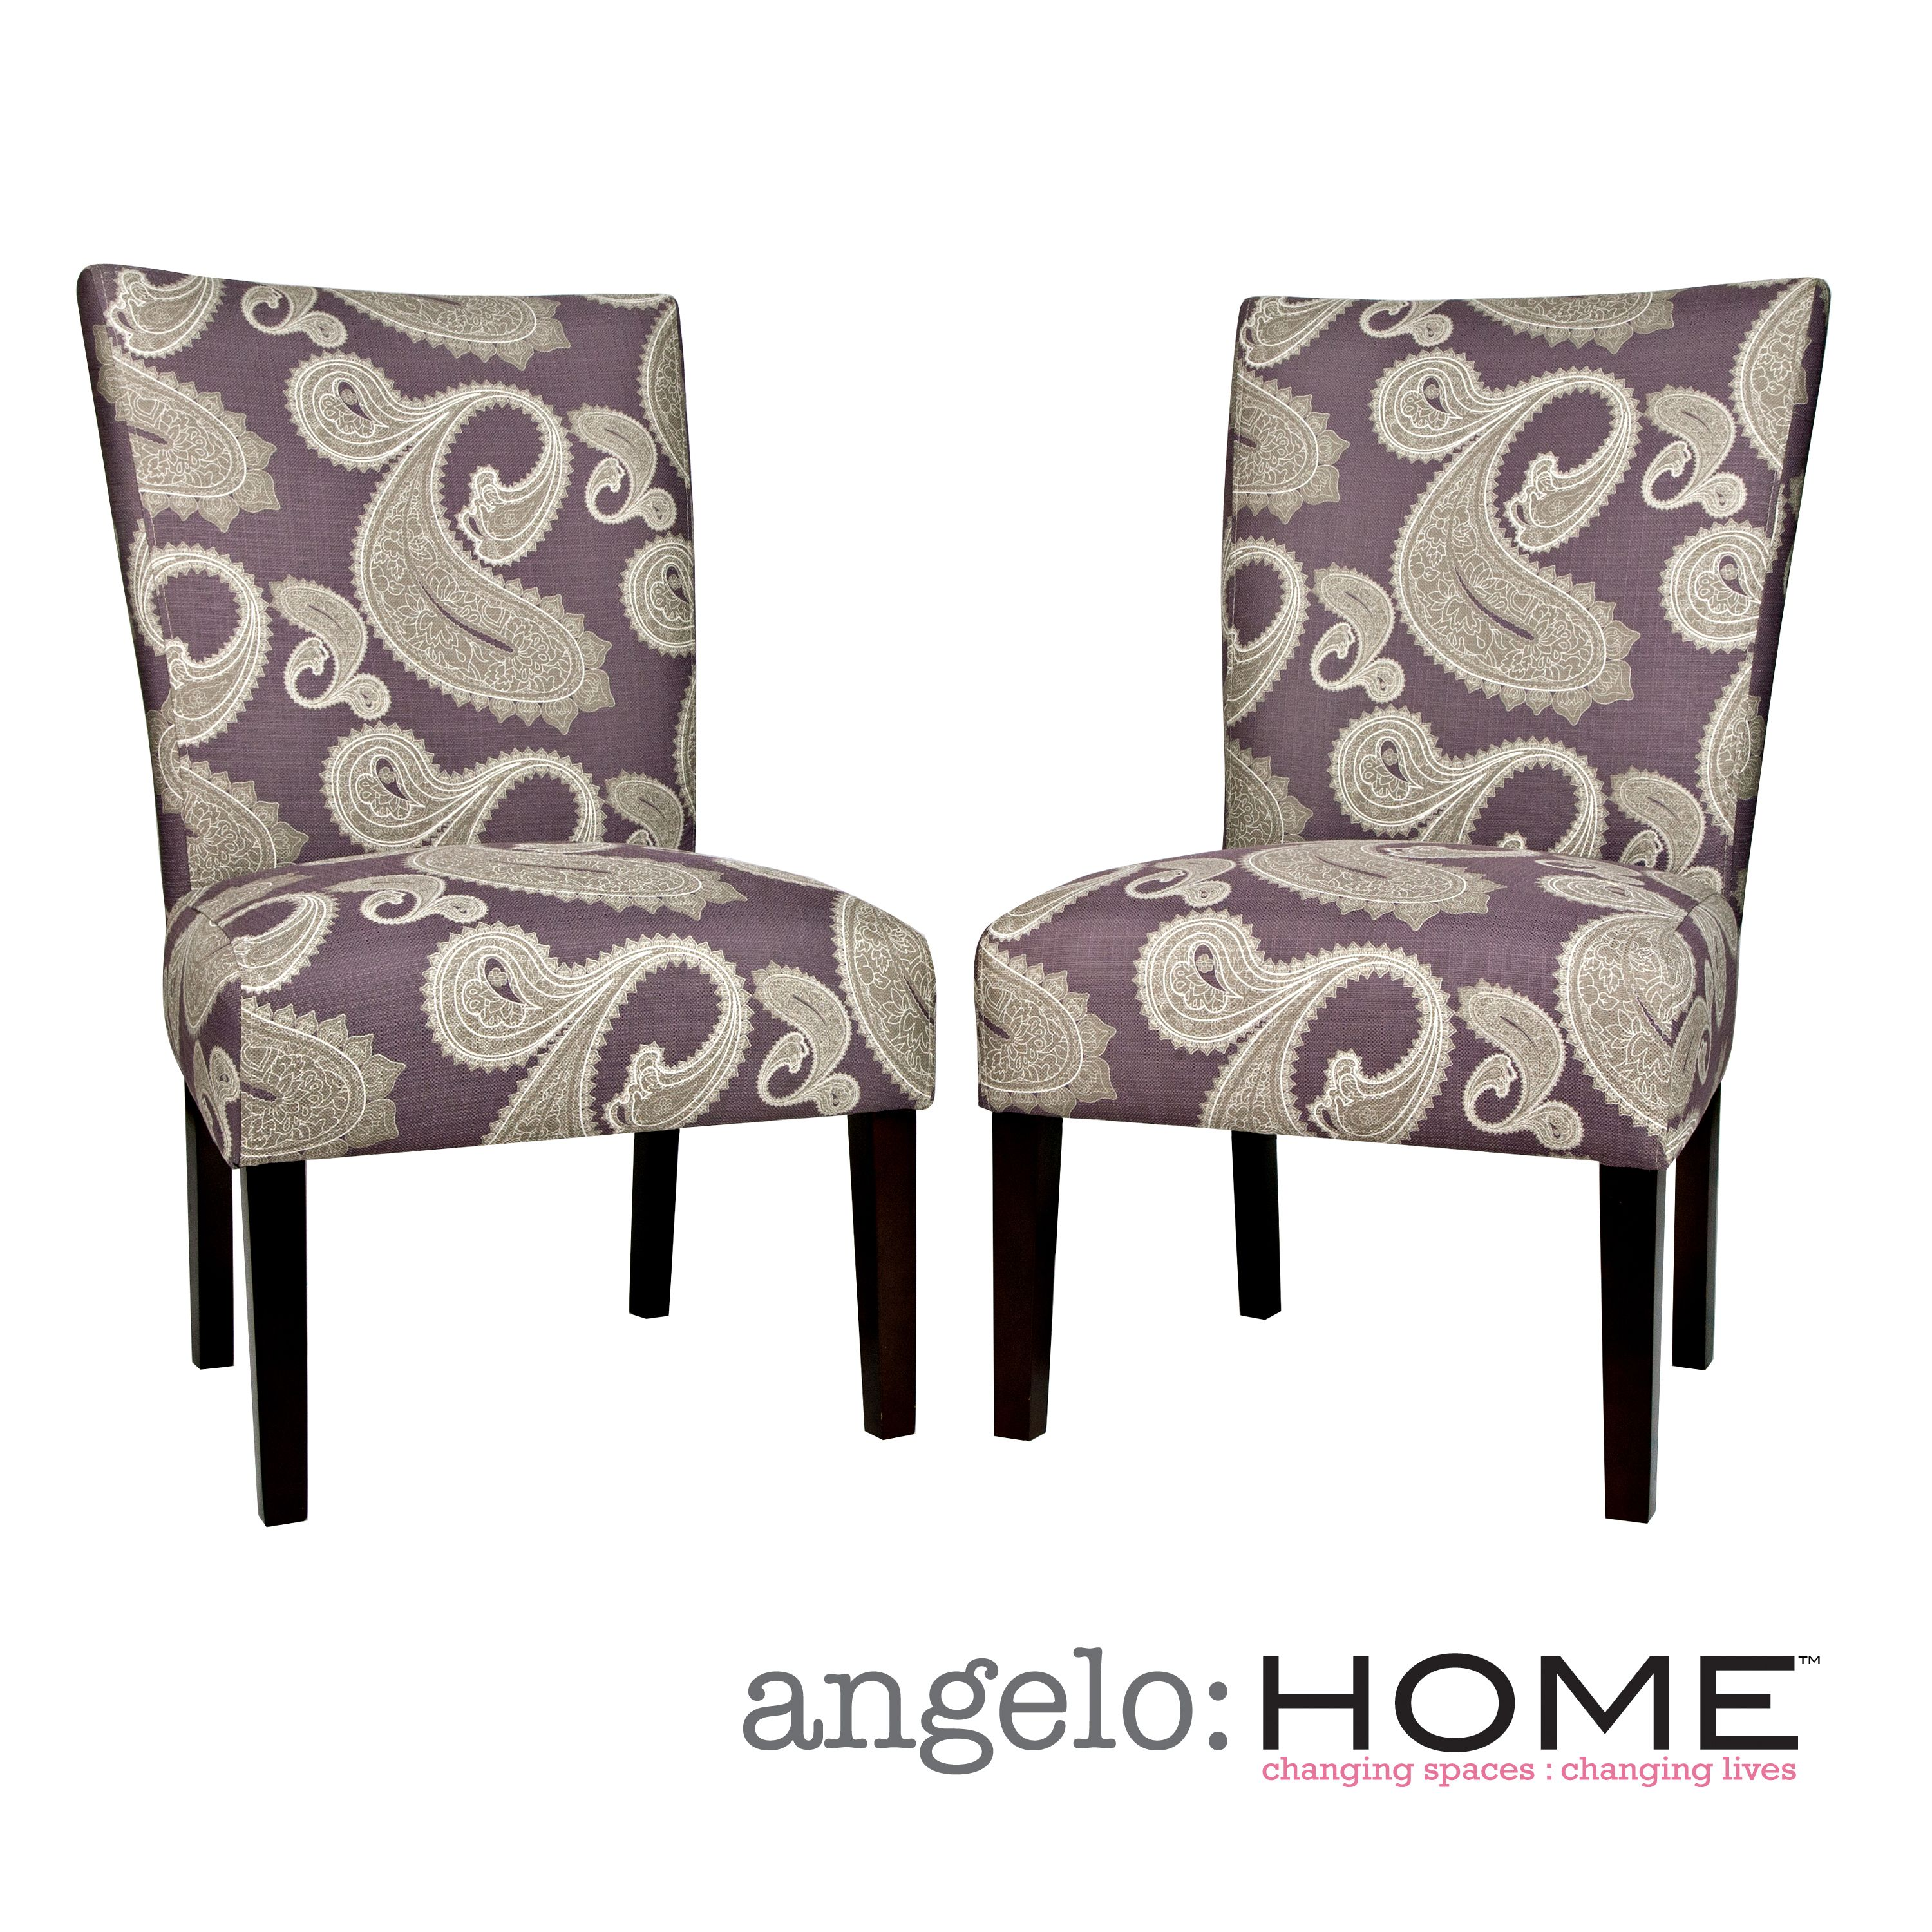 Angelo:HOME Bradford Feathered Paisley Amethyst Purple Upholstered Armless  Dining Chairs (Set Of 2